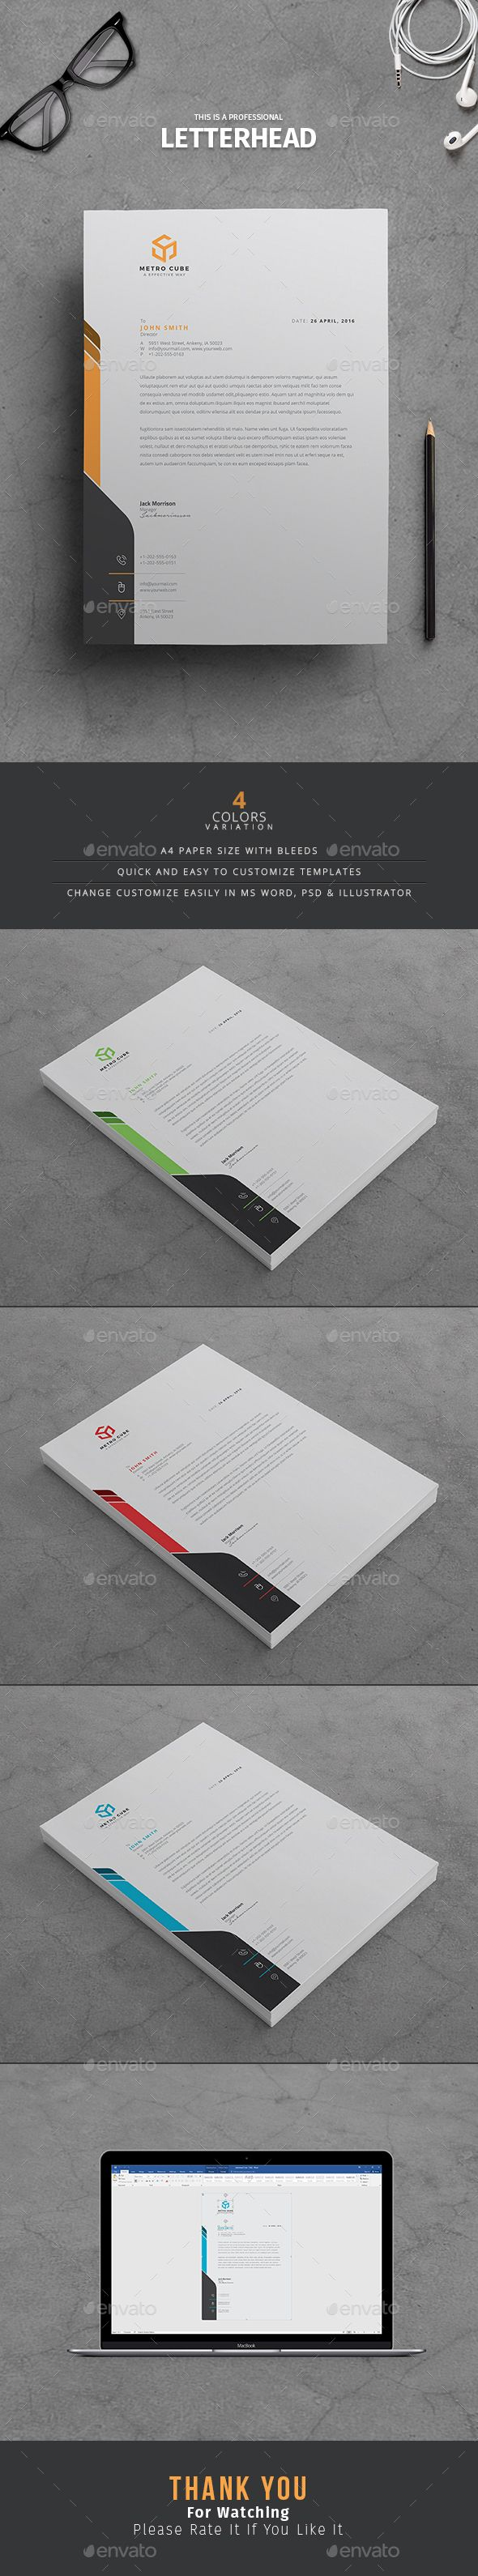 99 best letterhead images on pinterest design patterns design letterhead template psd vector eps ai illustrator ms word spiritdancerdesigns Image collections